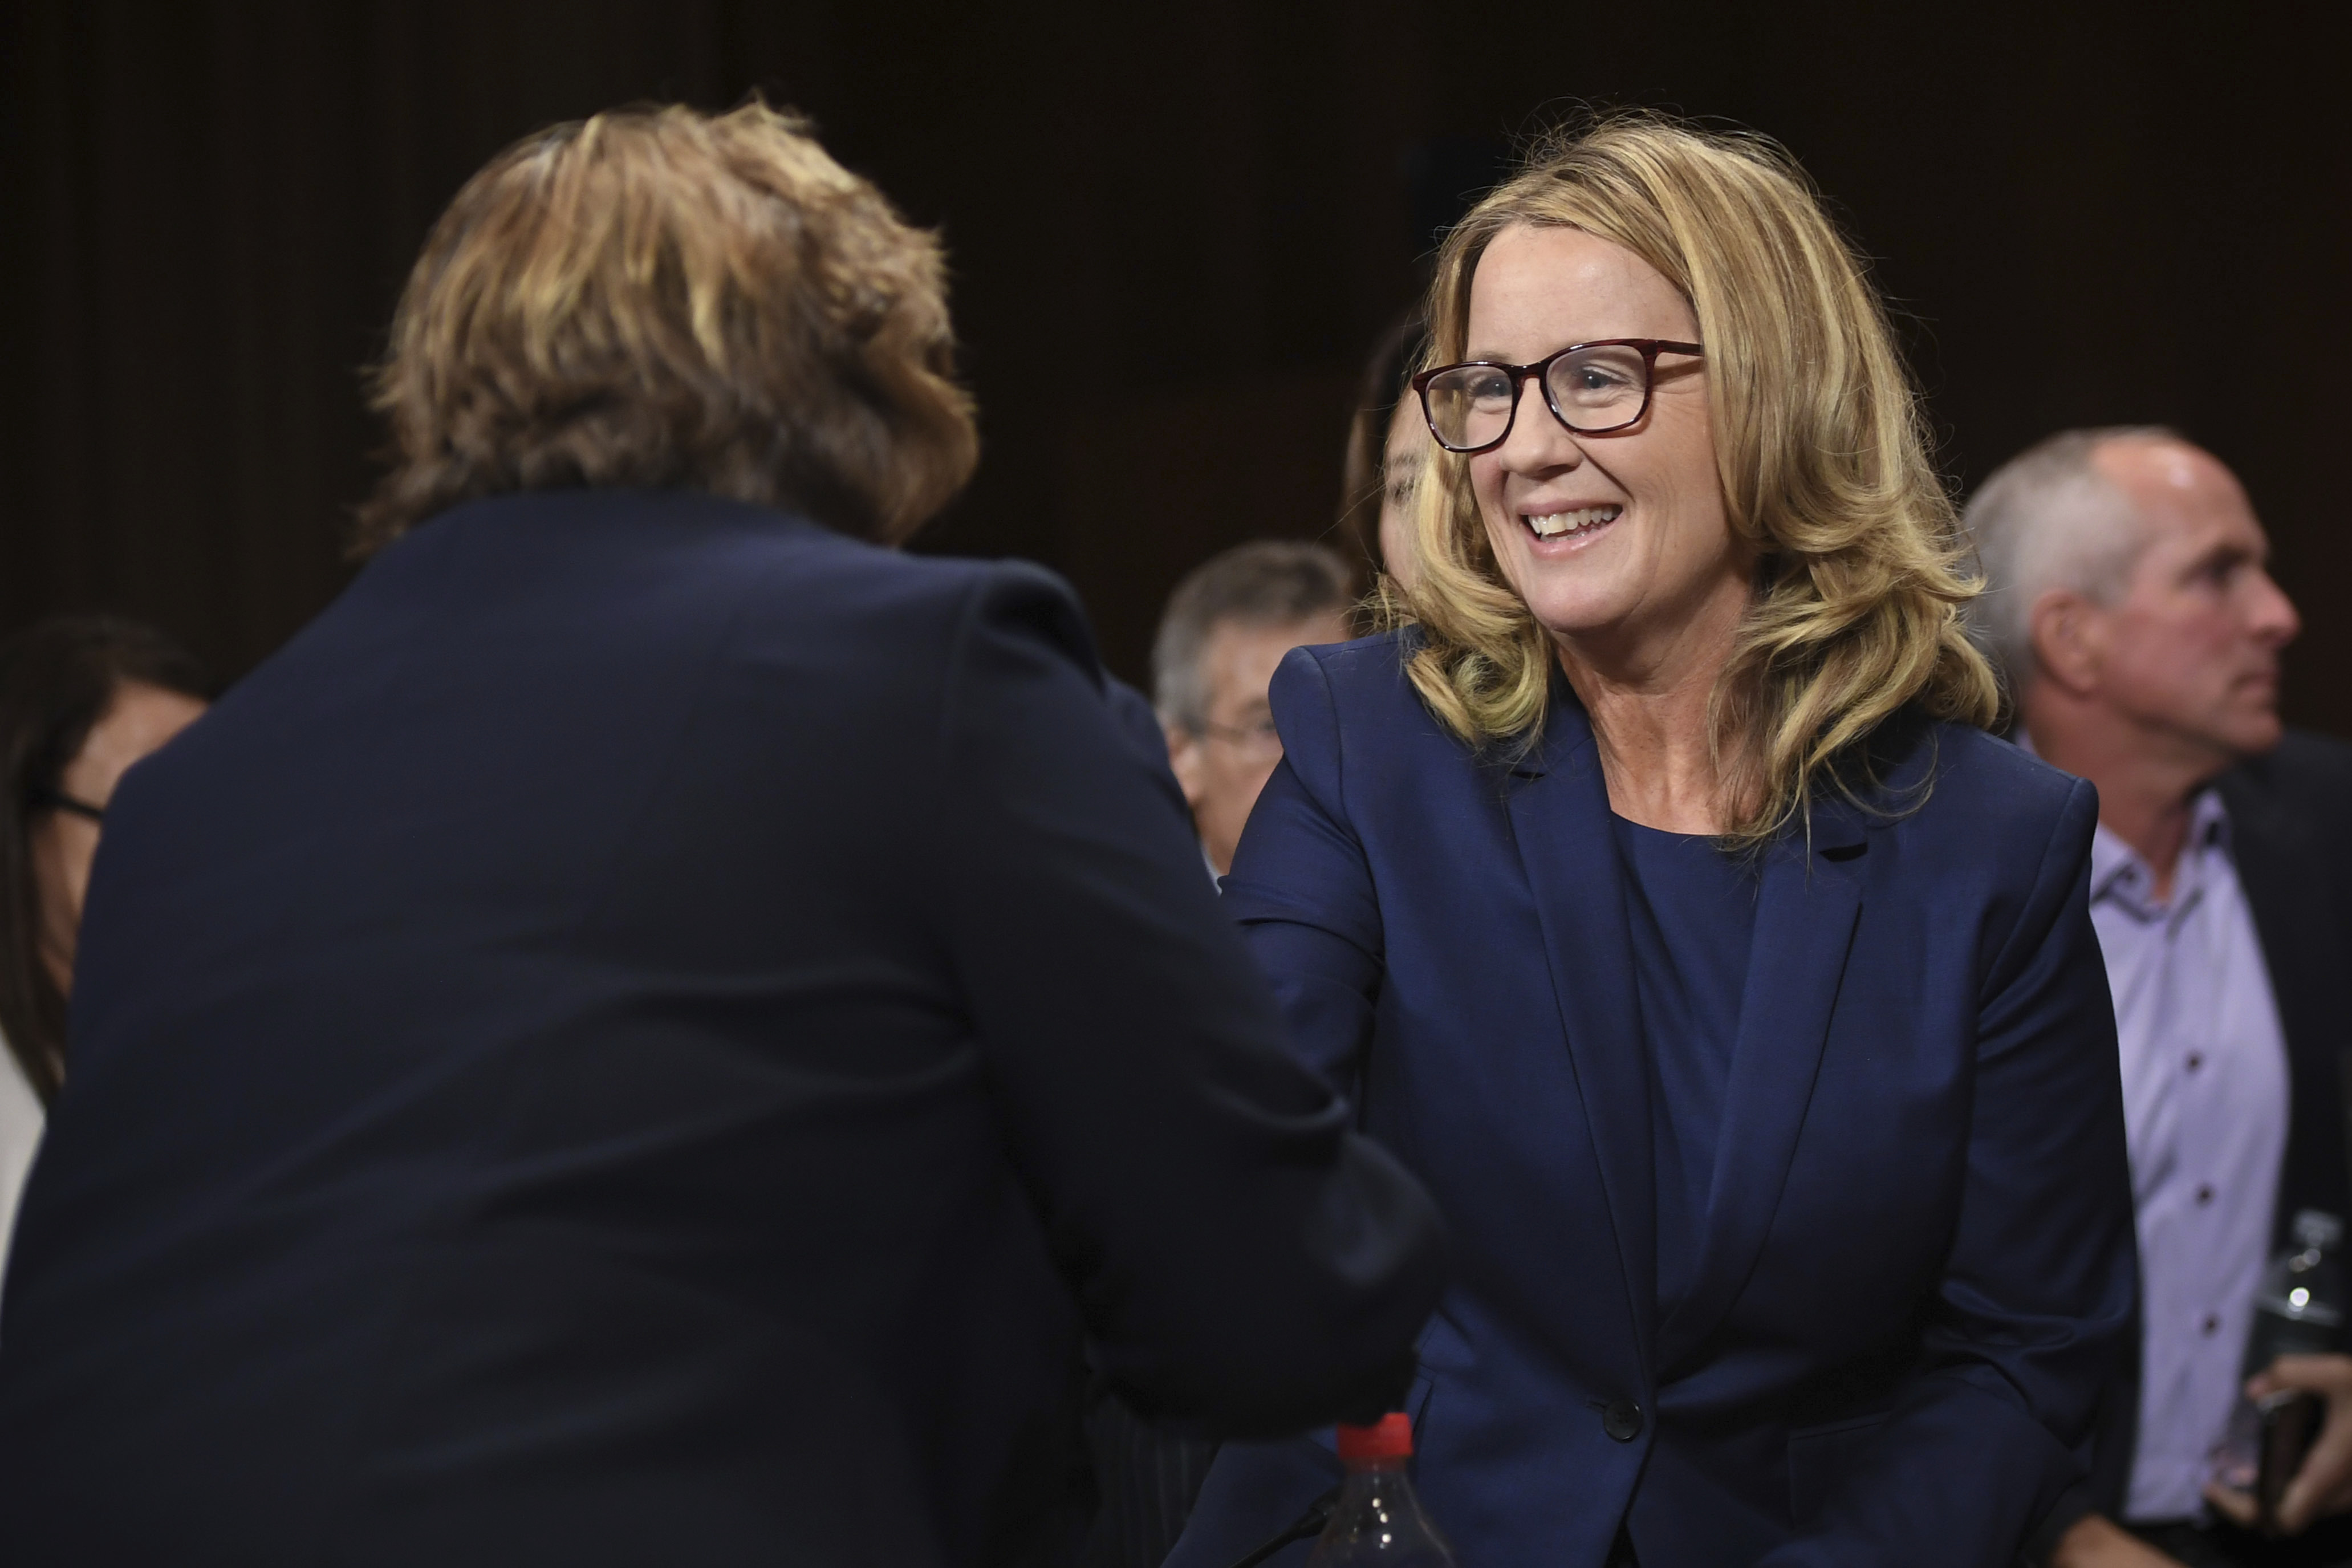 Christine Blasey Ford (R), the woman accusing Supreme Court nominee Brett Kavanaugh of sexually assaulting her at a party 36 years ago, shakes hands with Rachel Mitchell, a prosecutor from Arizona, after she interrogated her before the US Senate Judiciary Committee on Capitol Hill in Washington, DC, September 27, 2018. (Saul Loeb/Pool Photo via AP)